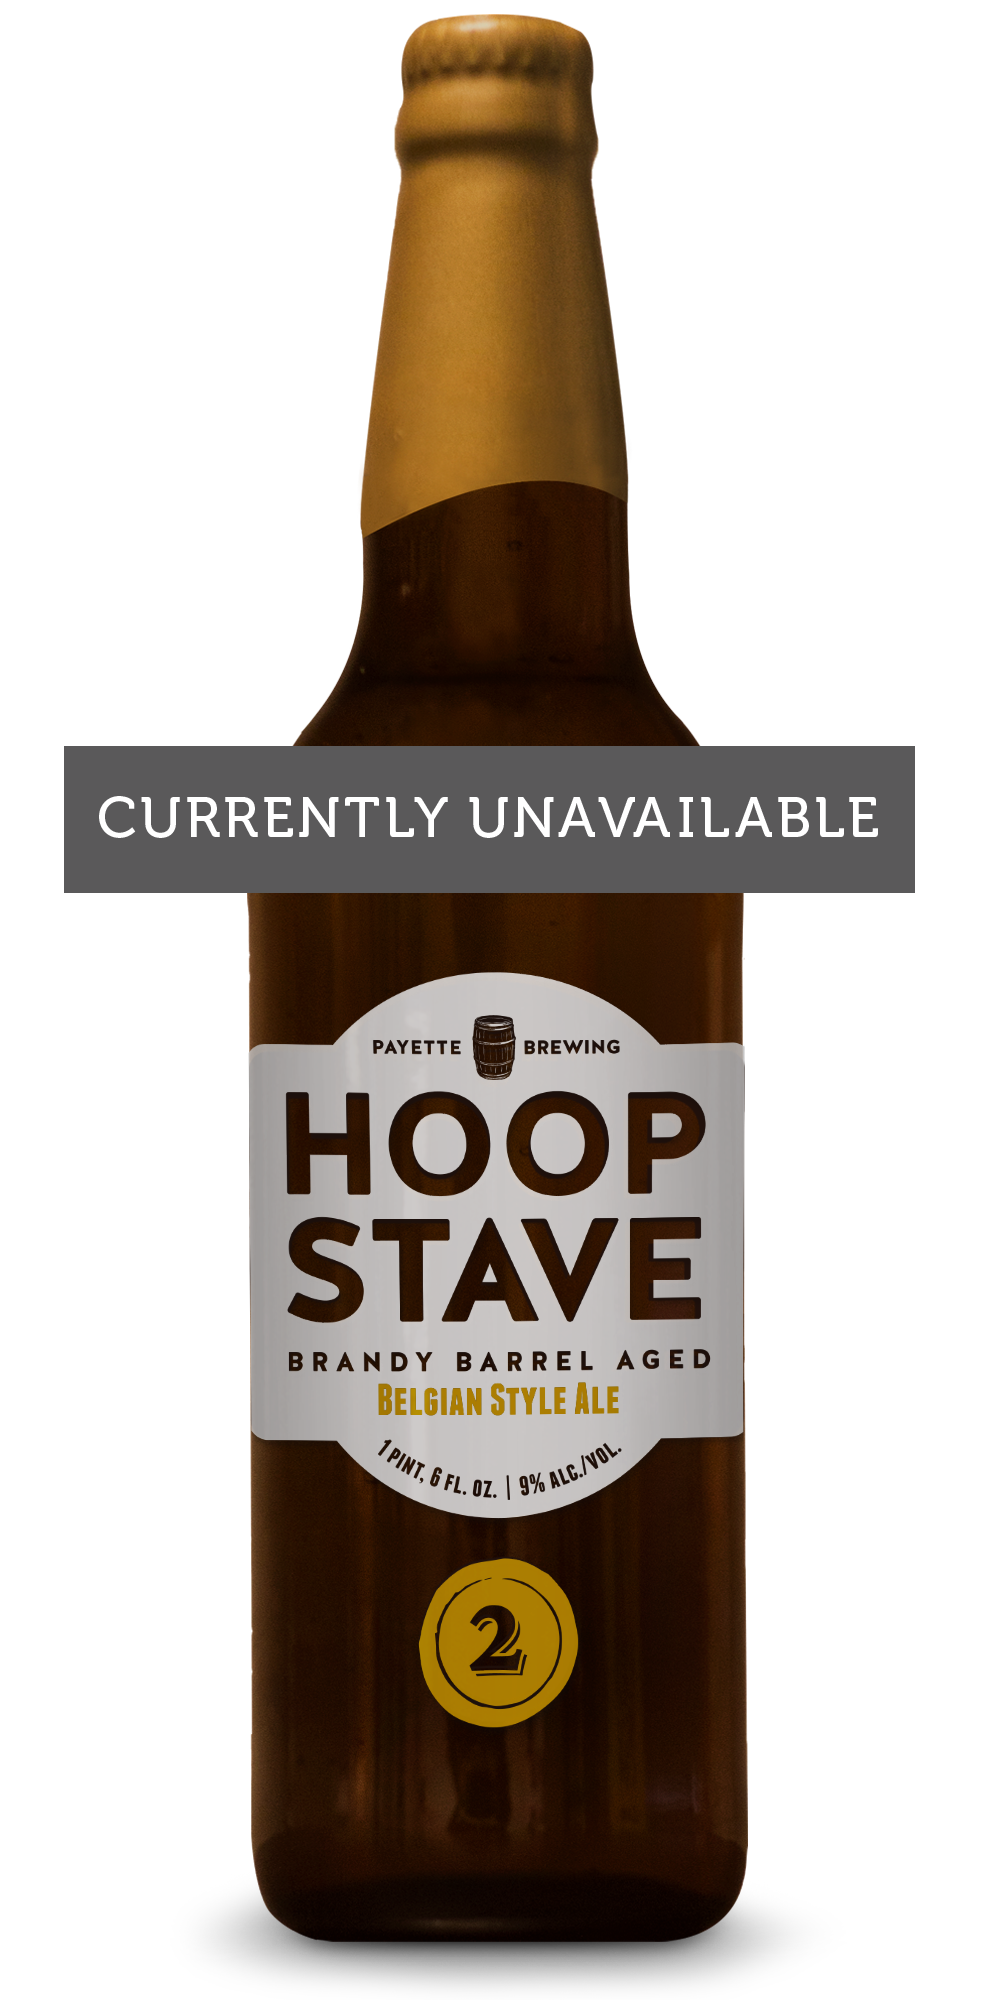 PayetteBrewing_Hoop&Stave_No2_Unavailable.png